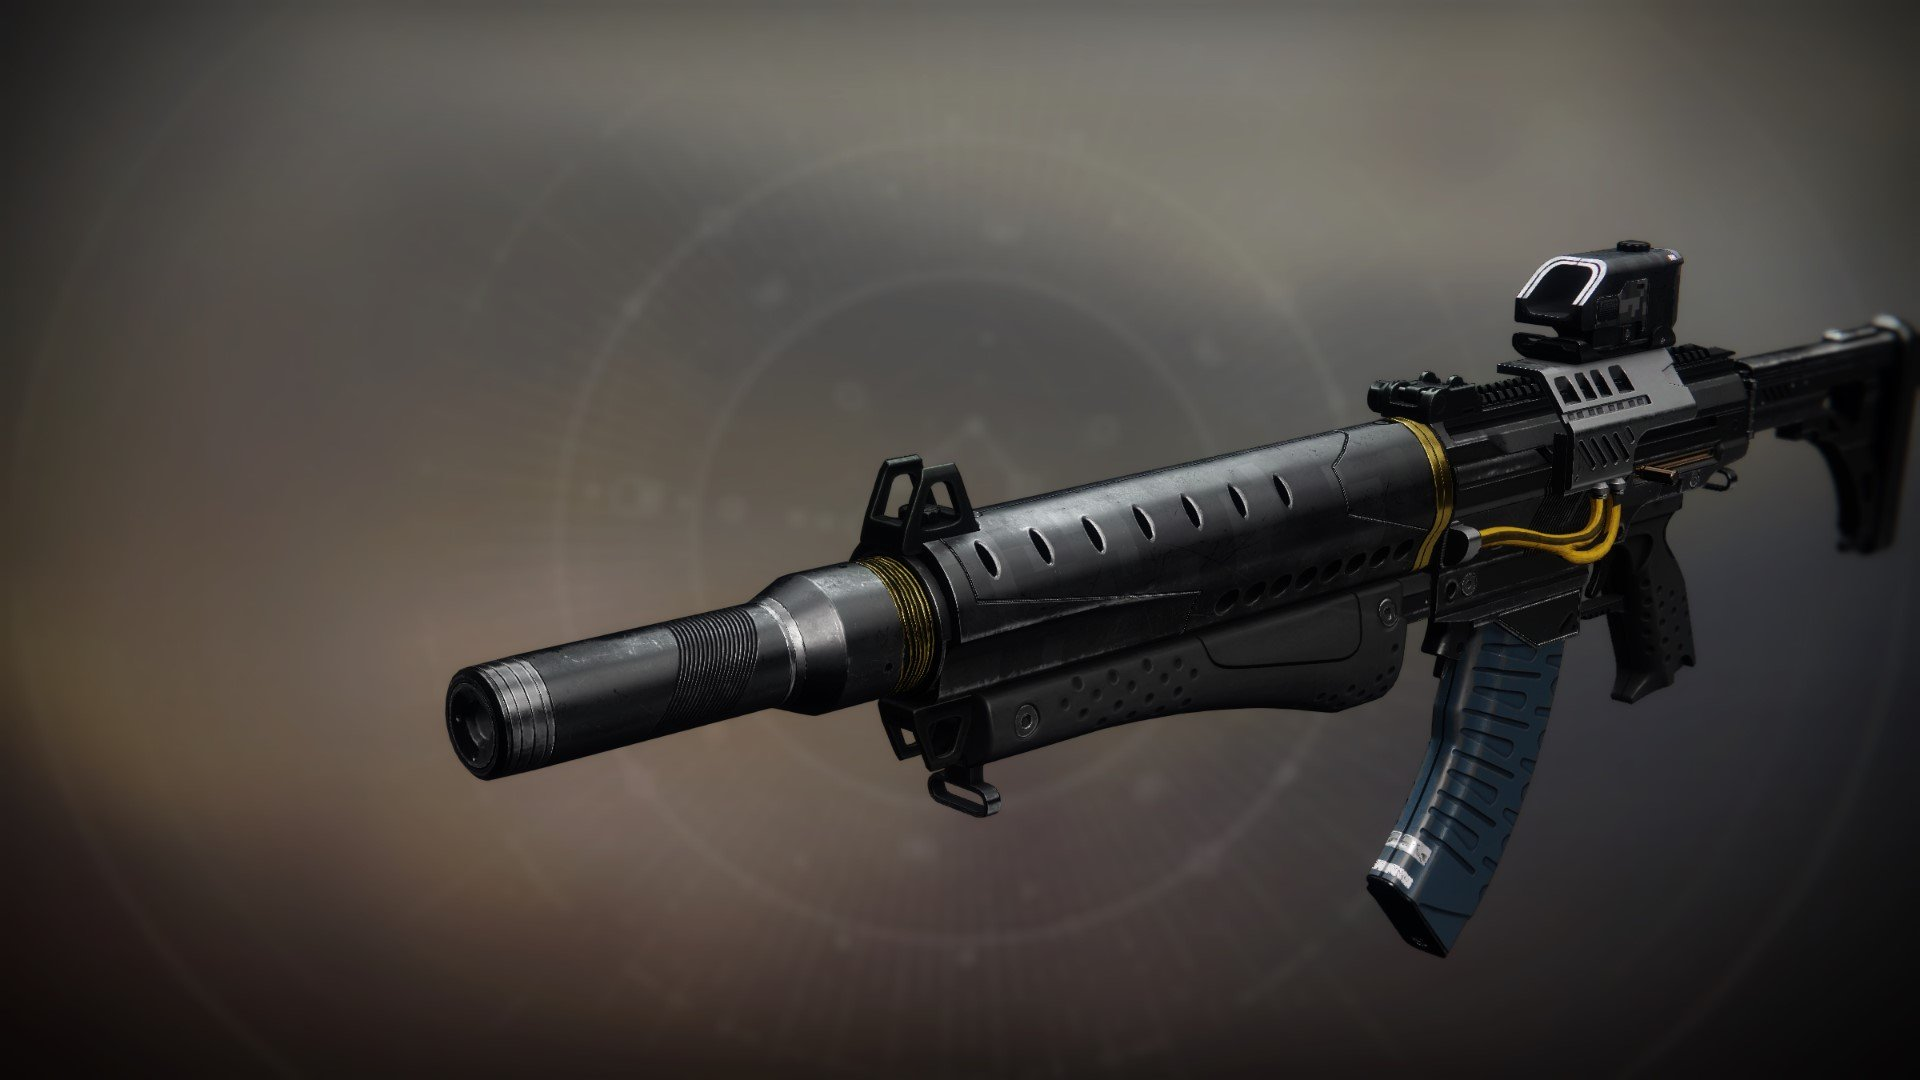 An in-game render of the Seventh Seraph Carbine.